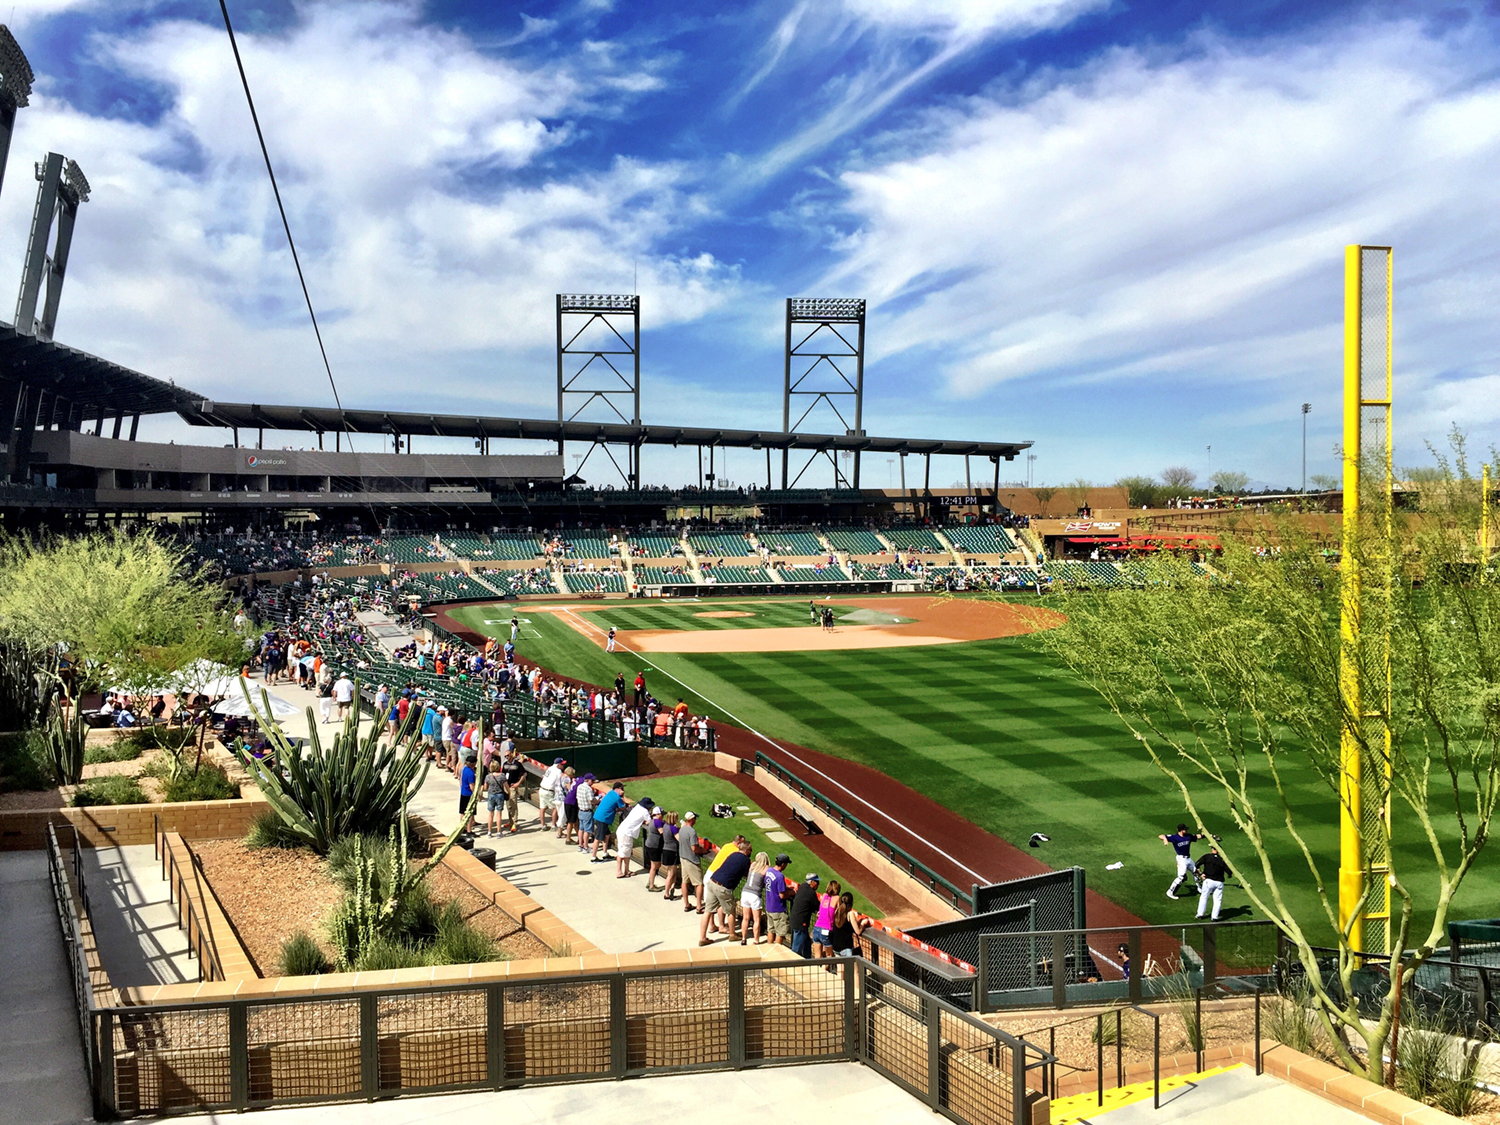 Mlb Spring Training Locations Florida Map.Cactus League 2019 Spring Training Schedule Spring Training Online